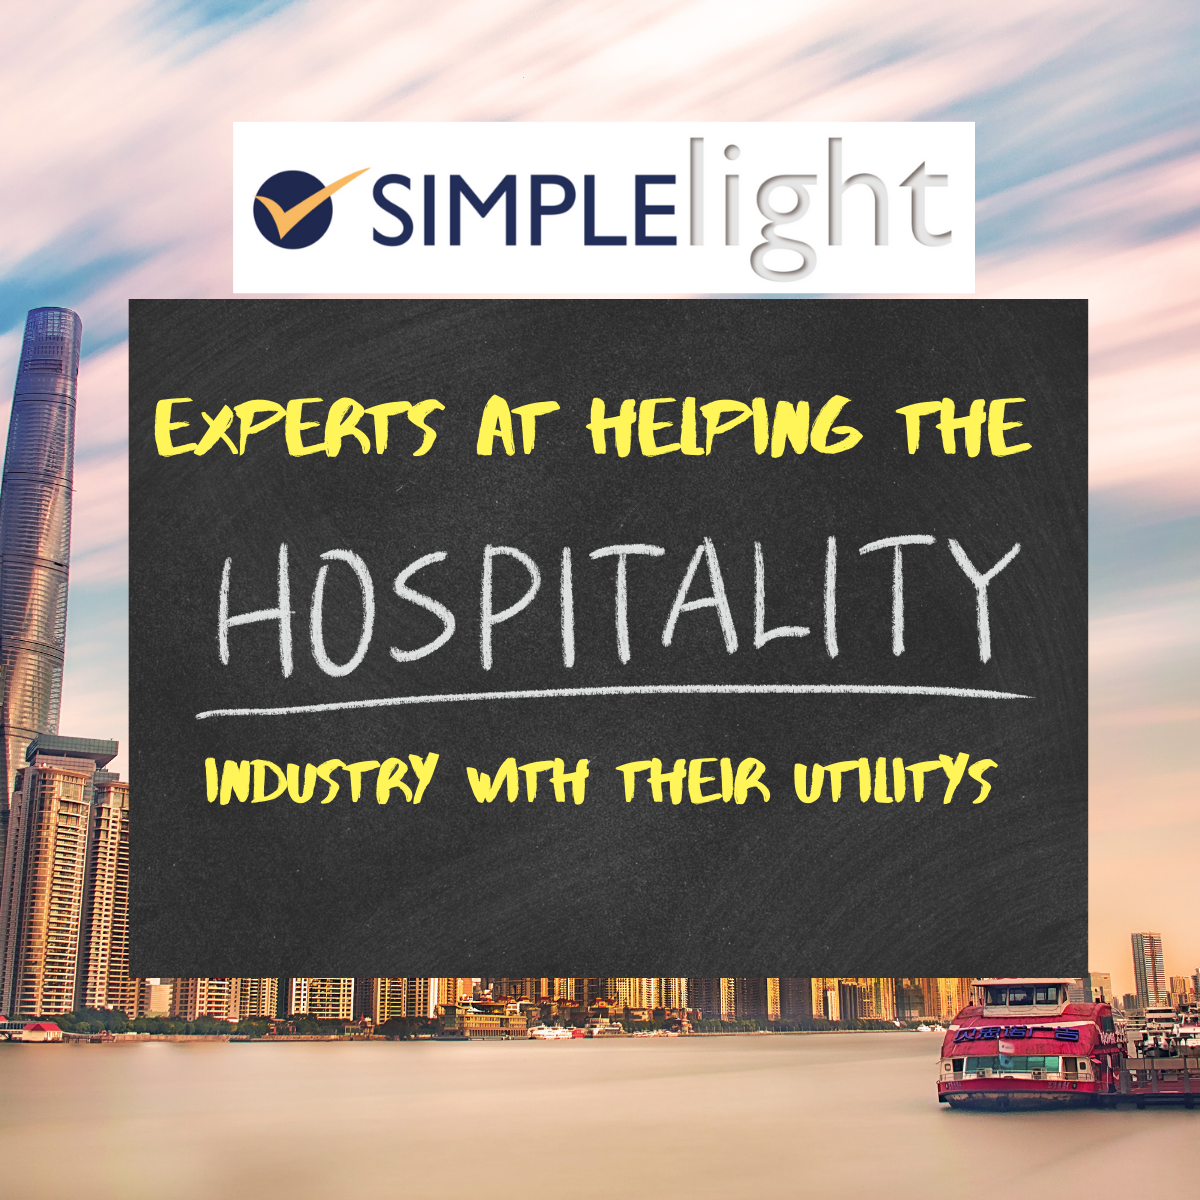 Specialist in helping the hospitality industry with there utilities